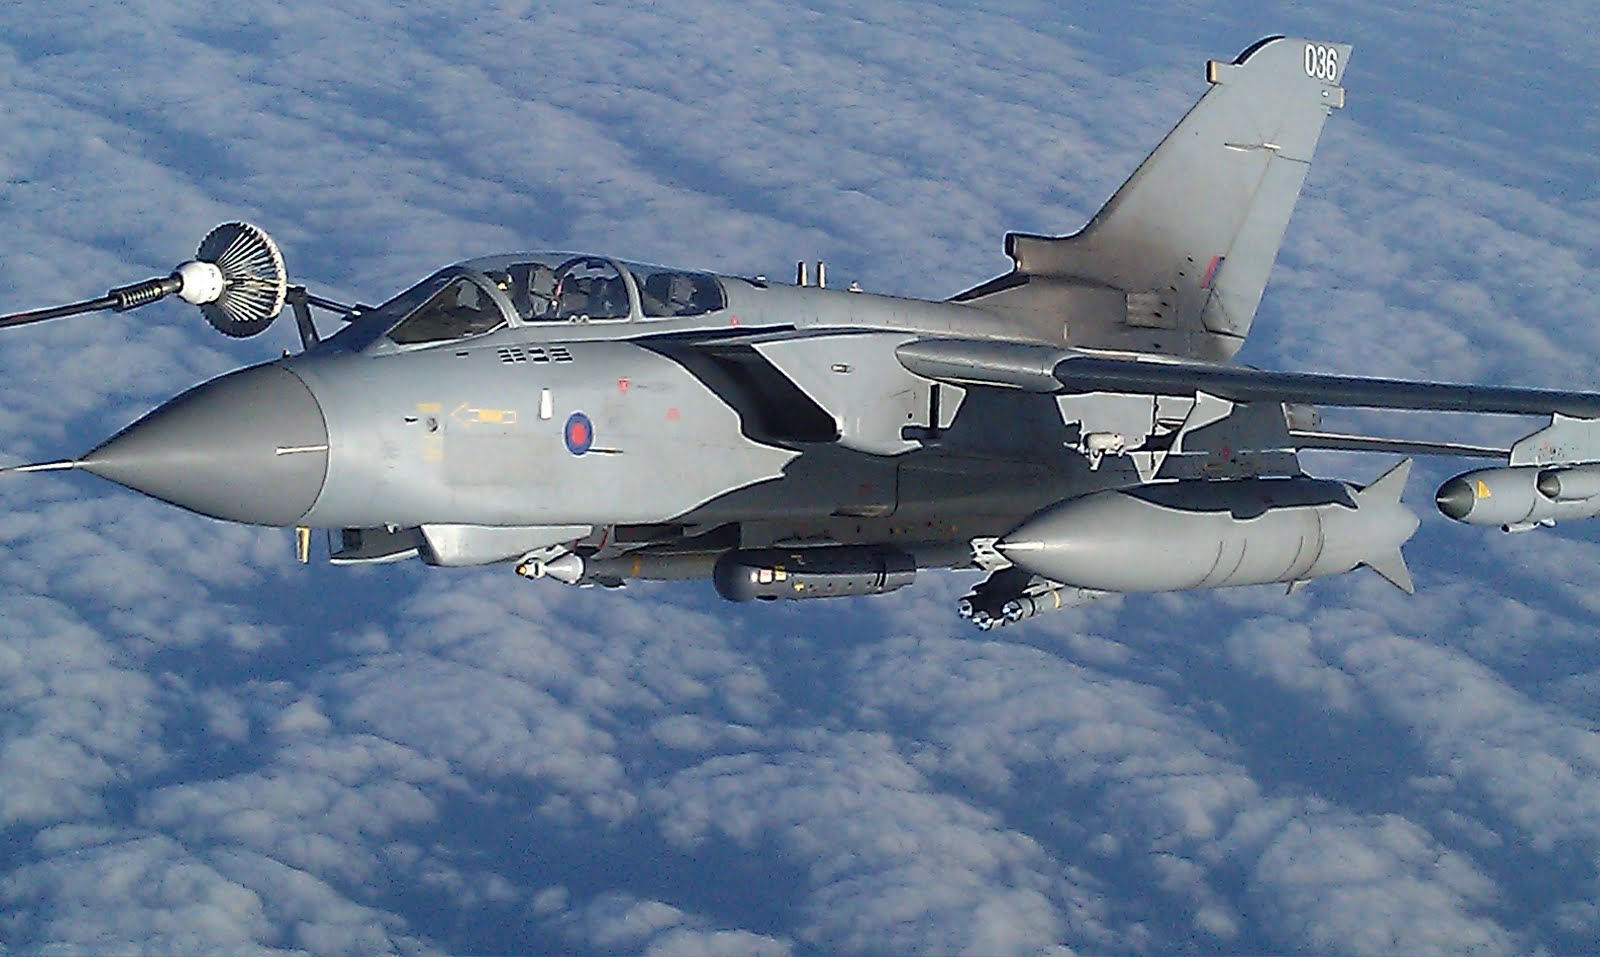 Royal Air Force Tornado GR4